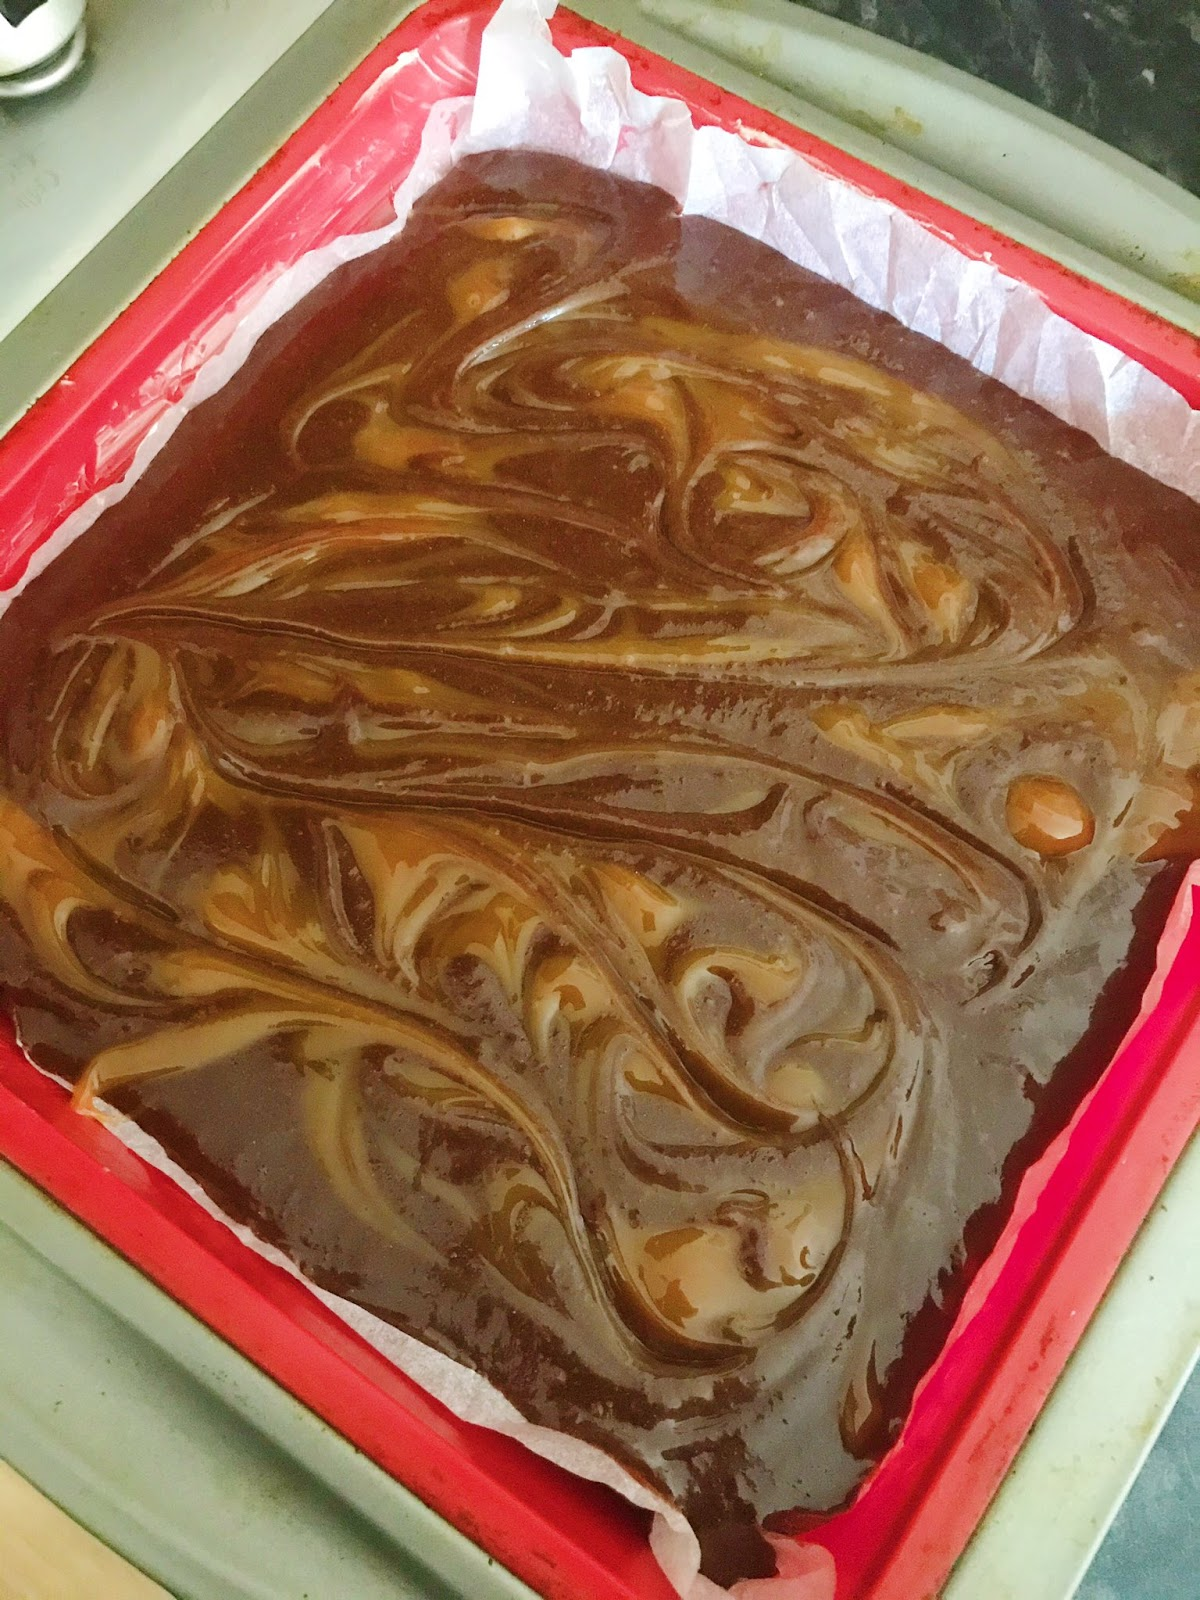 caramel swirled on top of brownies